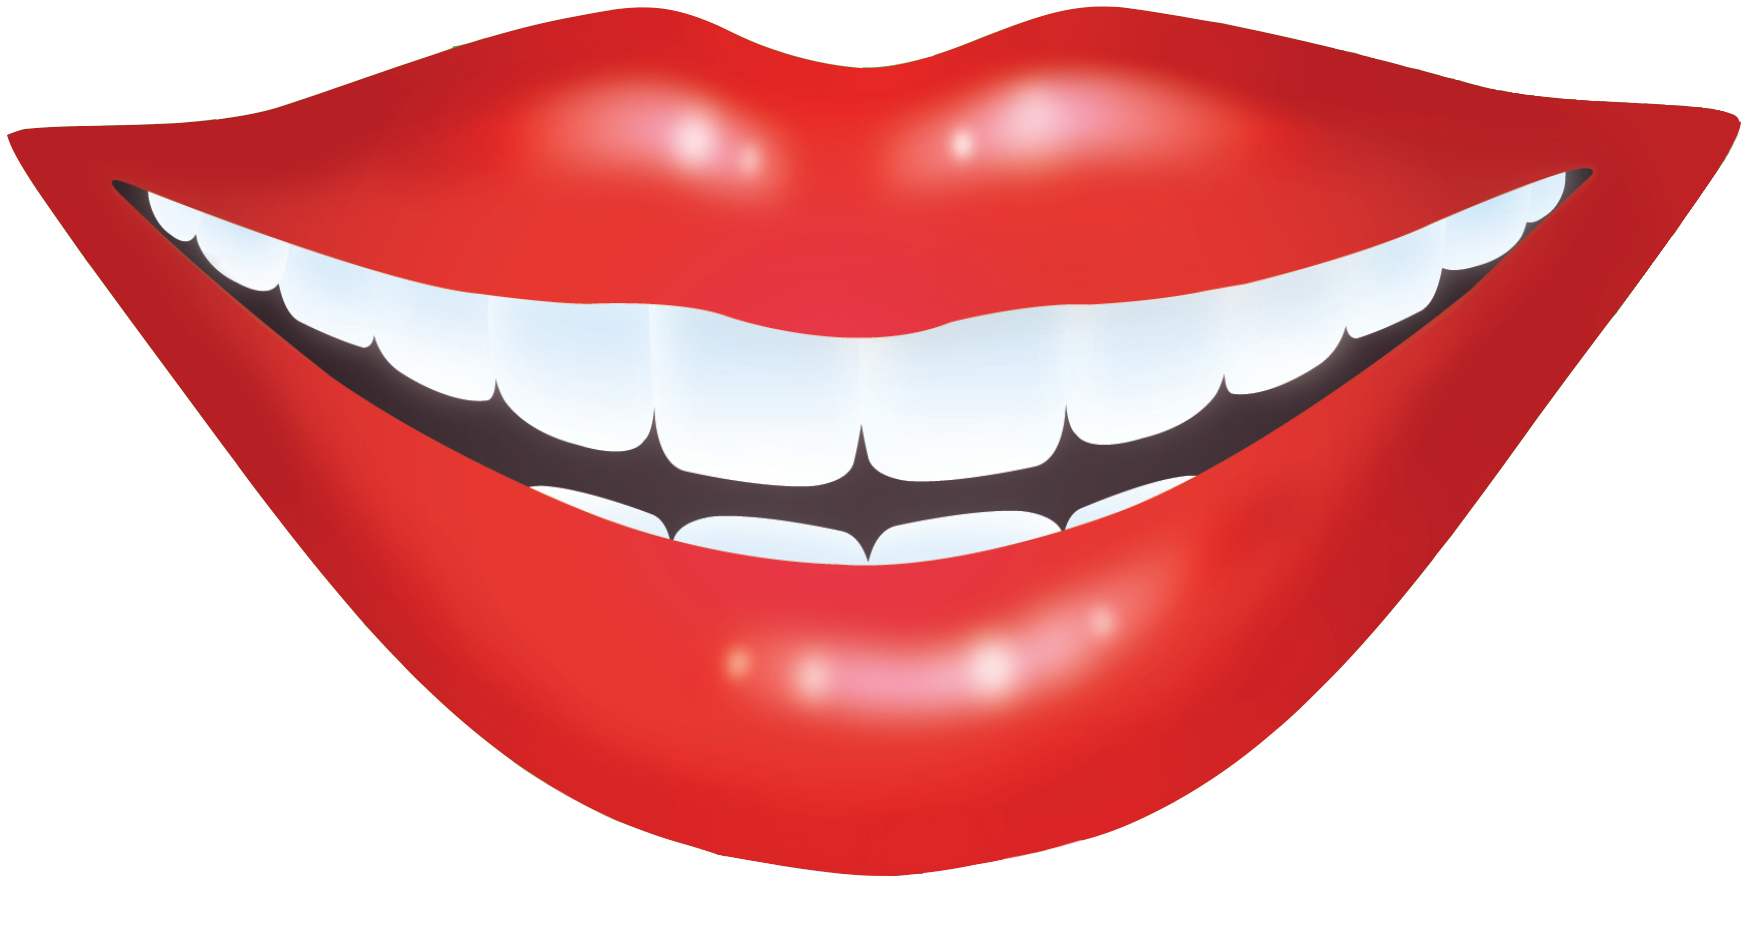 Smiling Red Lips - Smile Lips, Transparent background PNG HD thumbnail